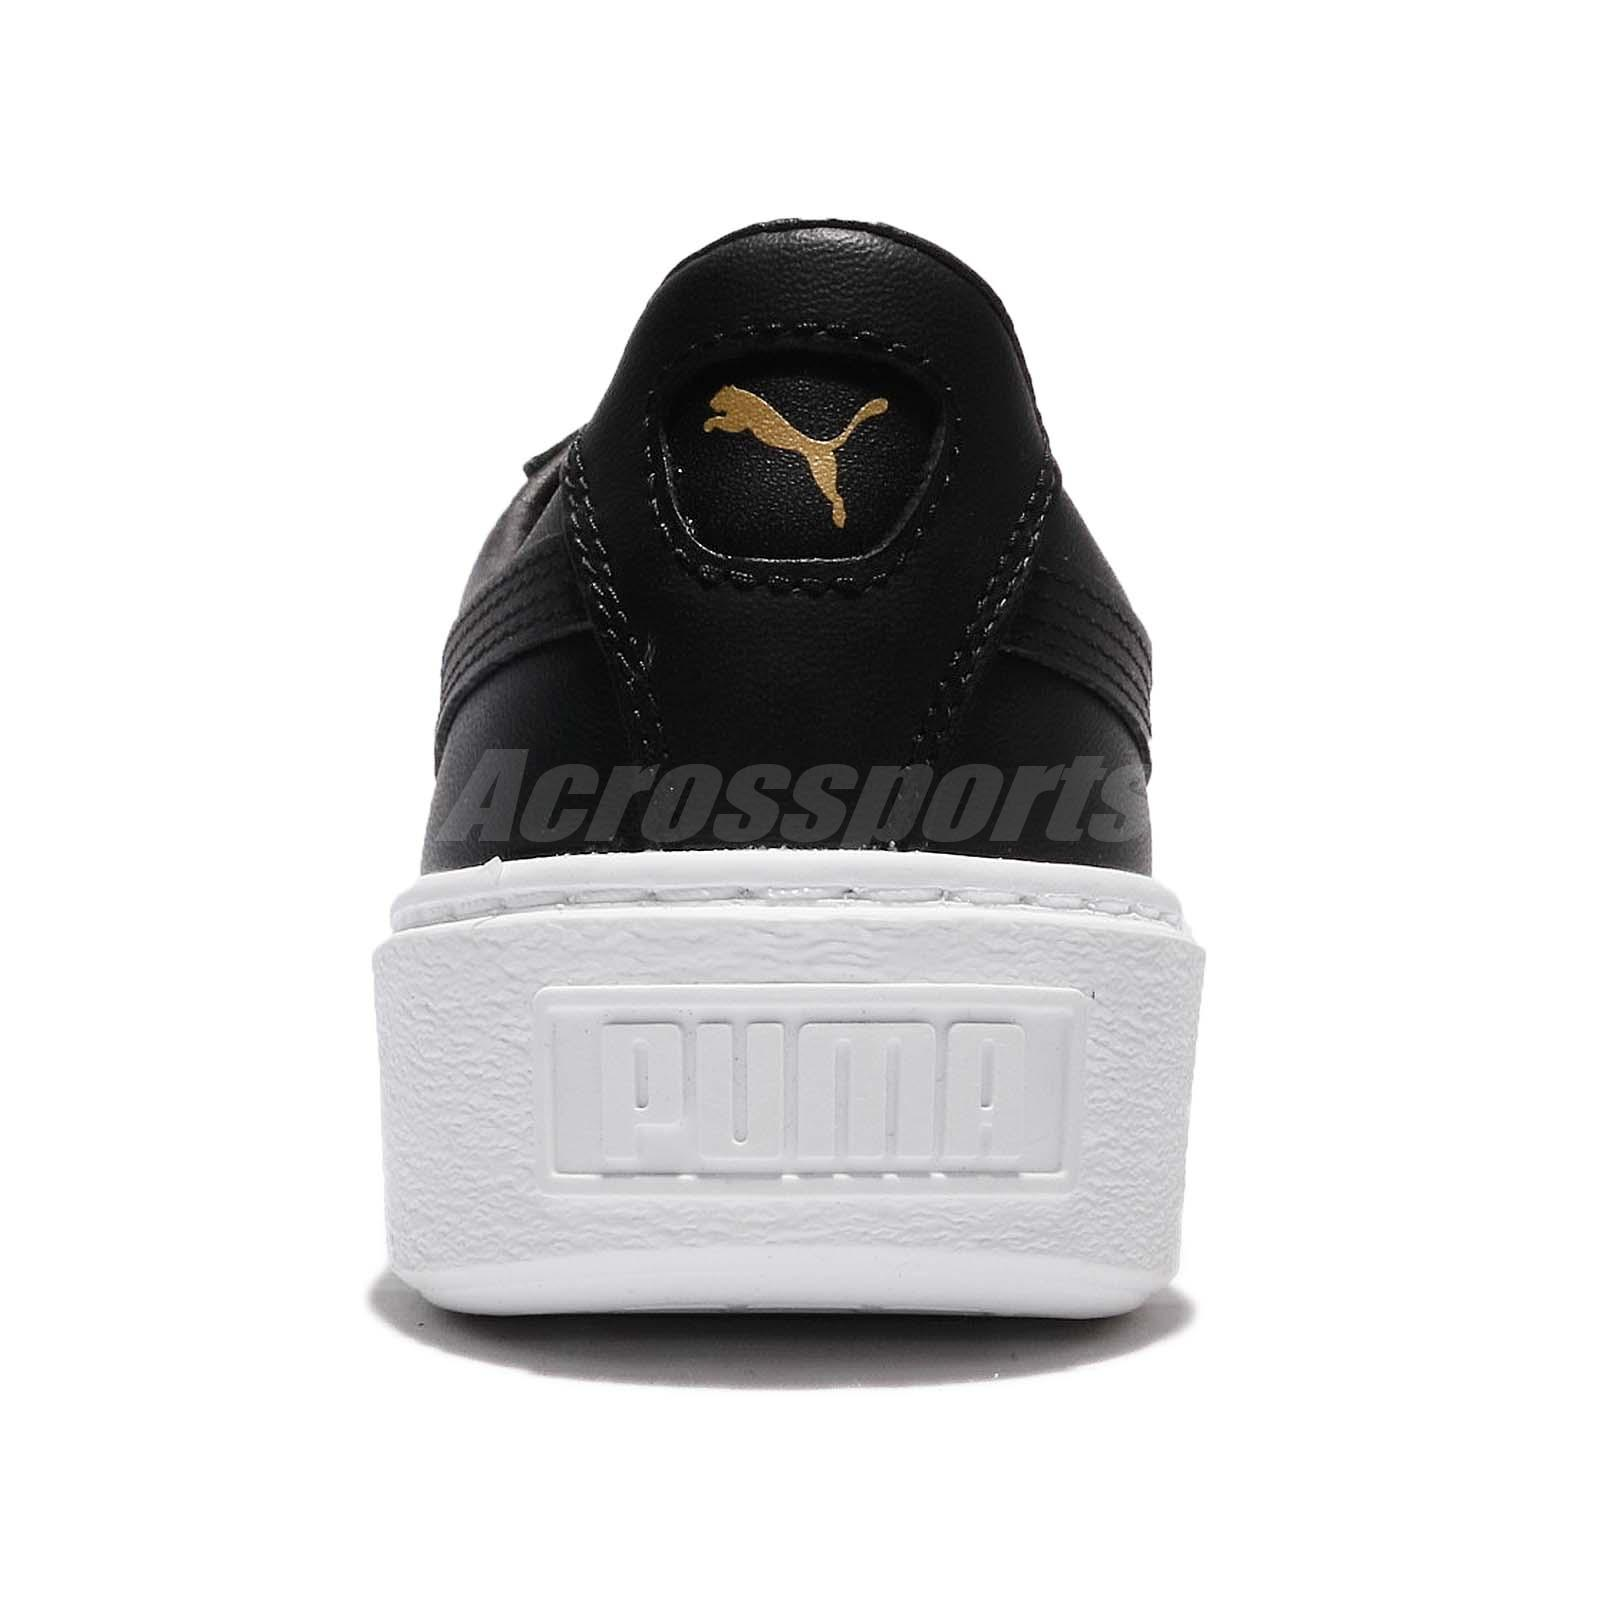 Puma Basket Platform Core Black Gold Leather Women Fashion Shoe ... f467ba51b